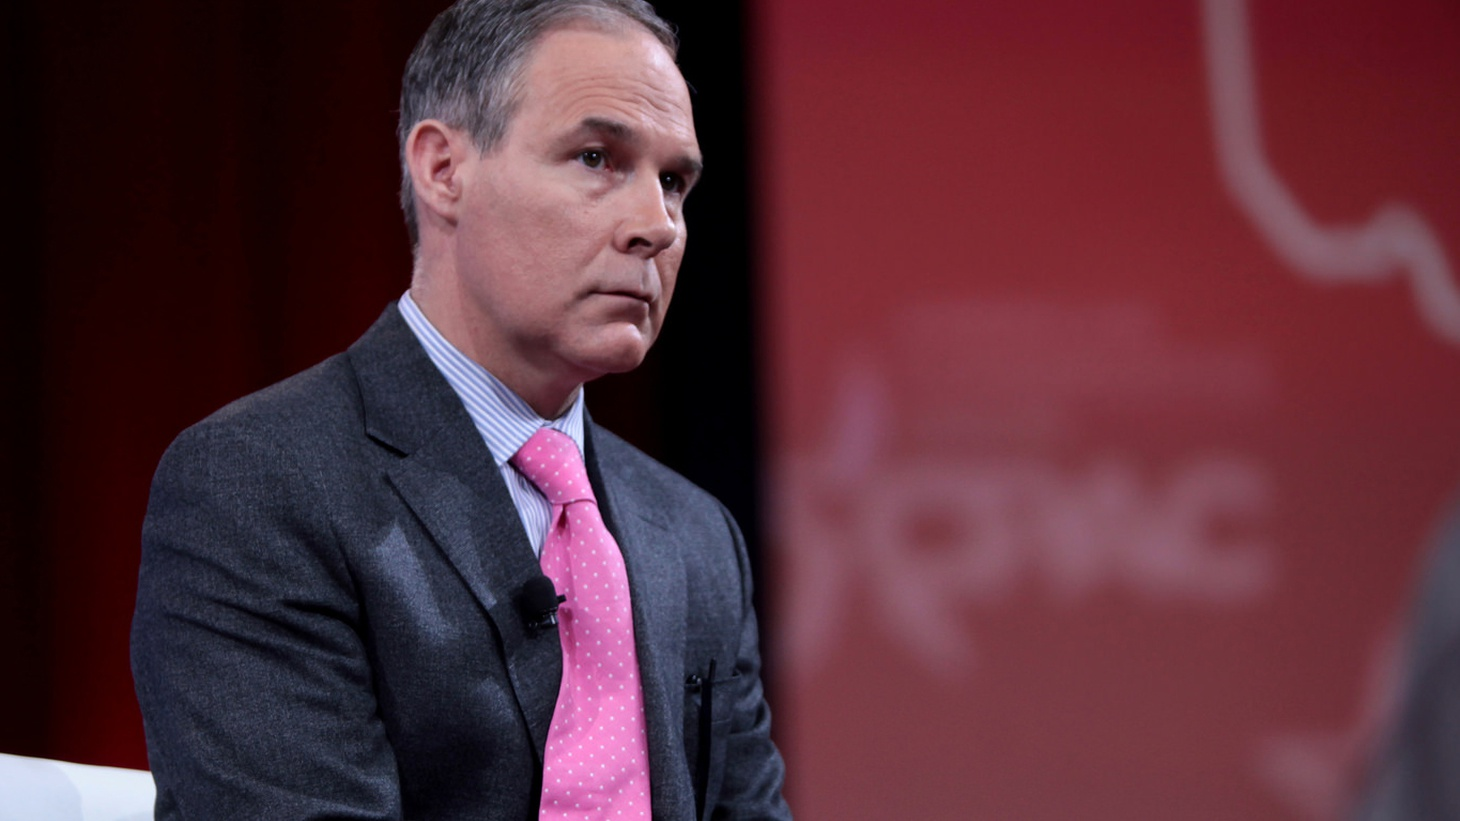 Like Scott Pruitt's former landlord, it took President Trump a while to get rid of him.